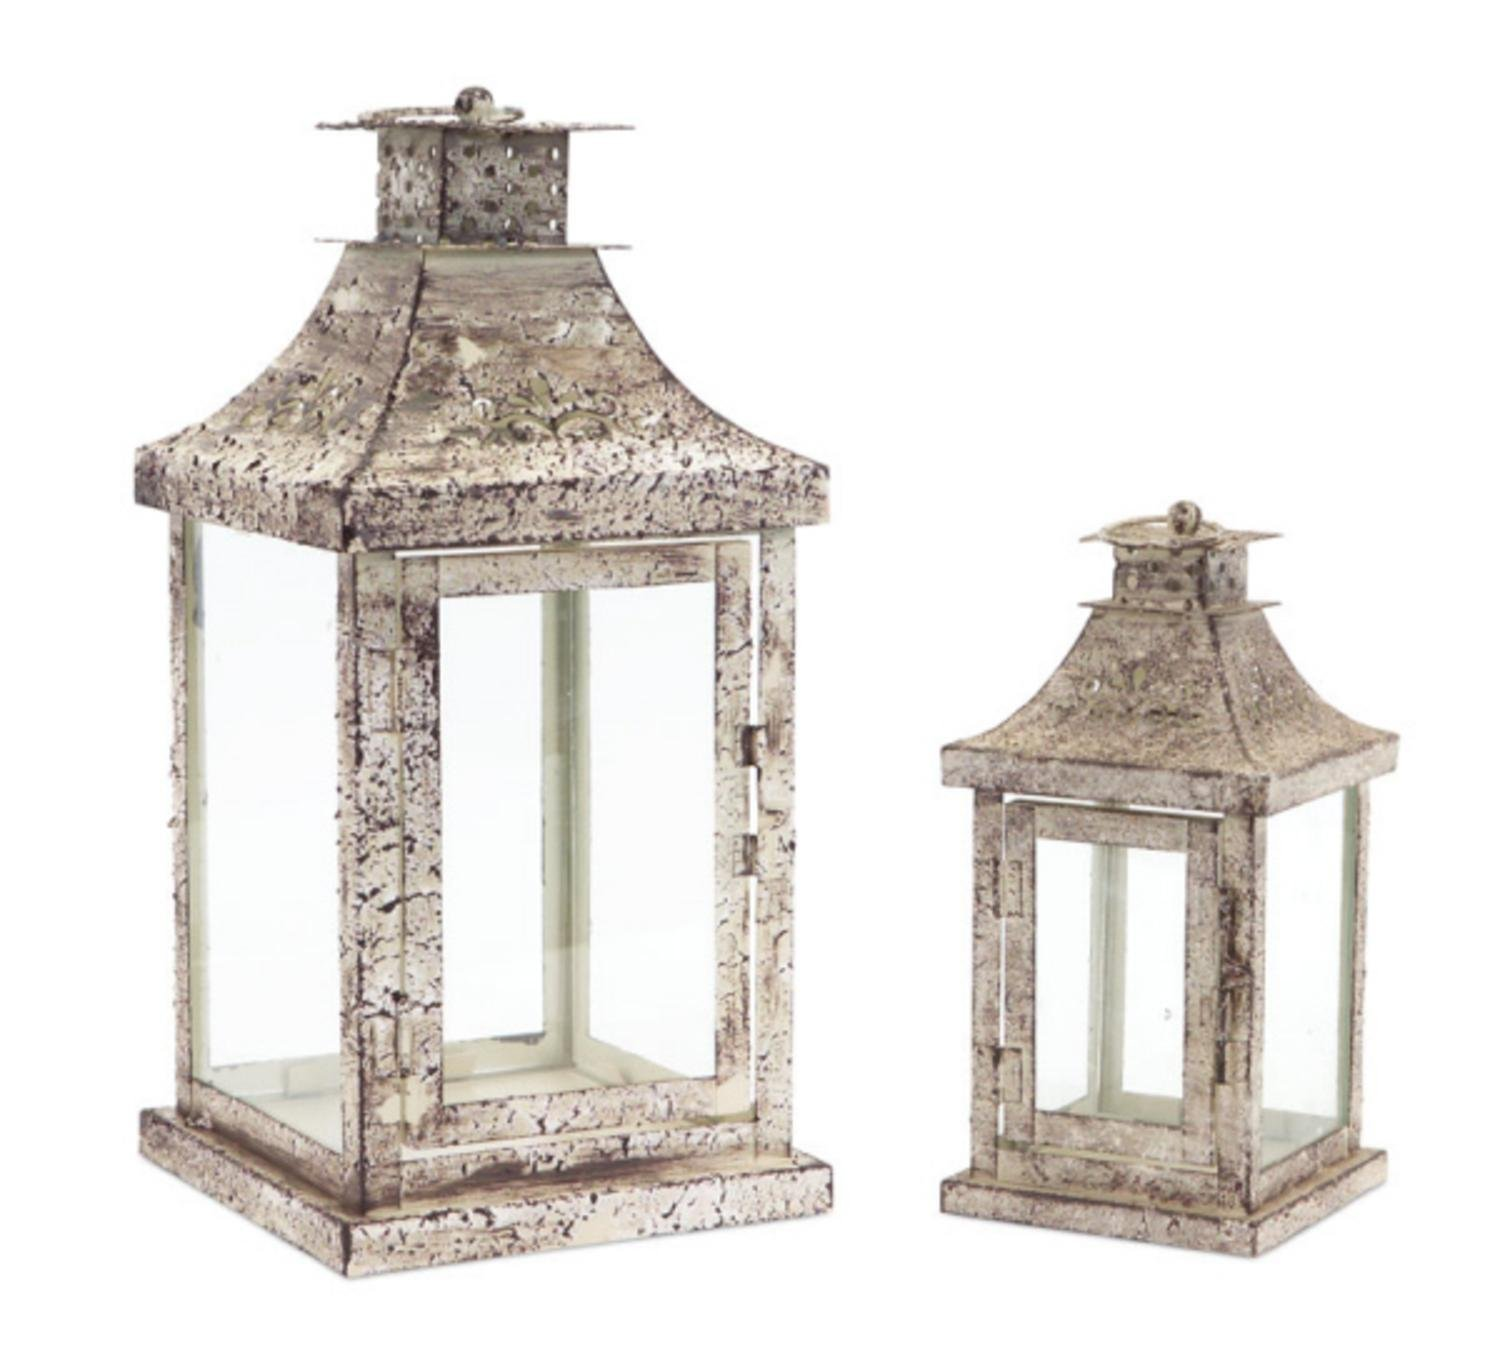 potter h amazon lanterns table decor patio shop decorative indoor b craftsman outdoor top com holder lantern large candle